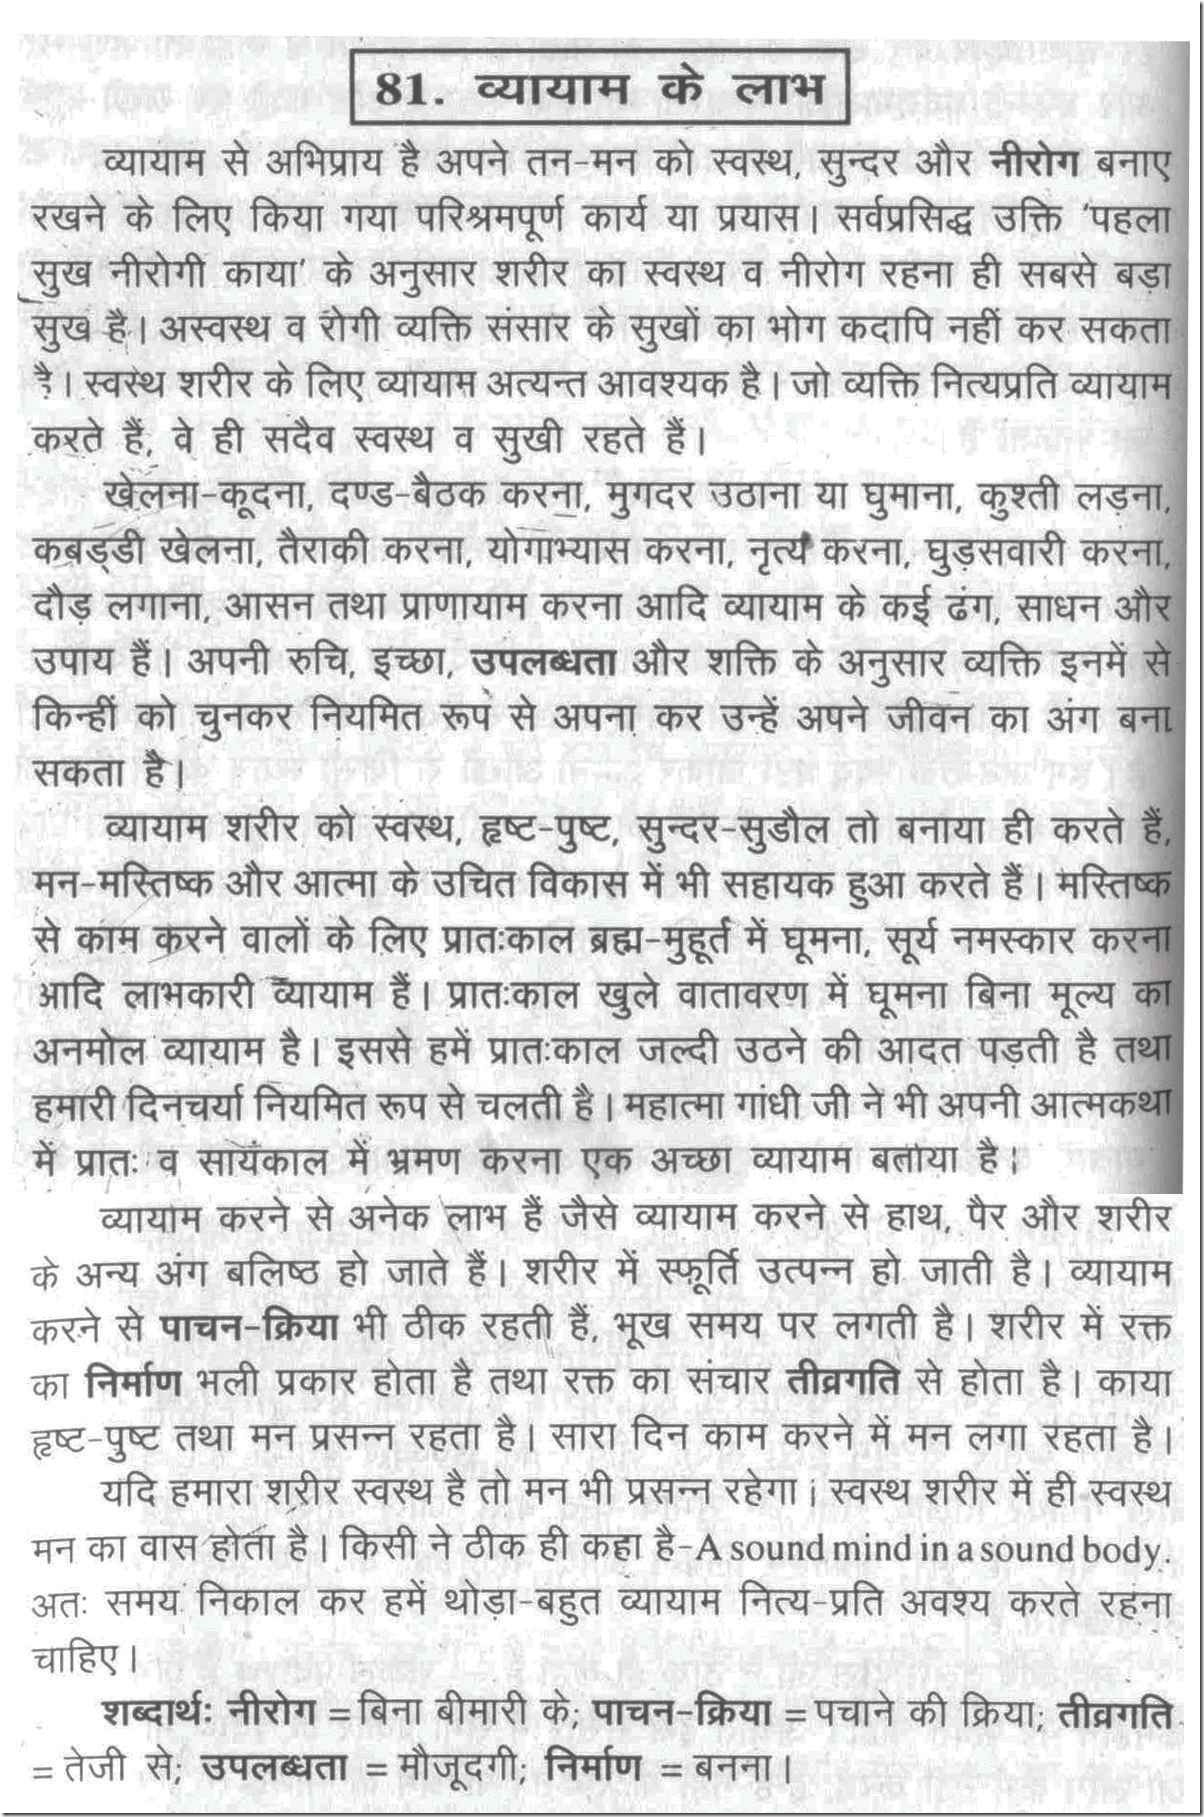 011 2563478896 Essay On Health And Fitness Through Food Good Habits In Hindi Exceptional Healthy Eating Reading Is A Habit Full